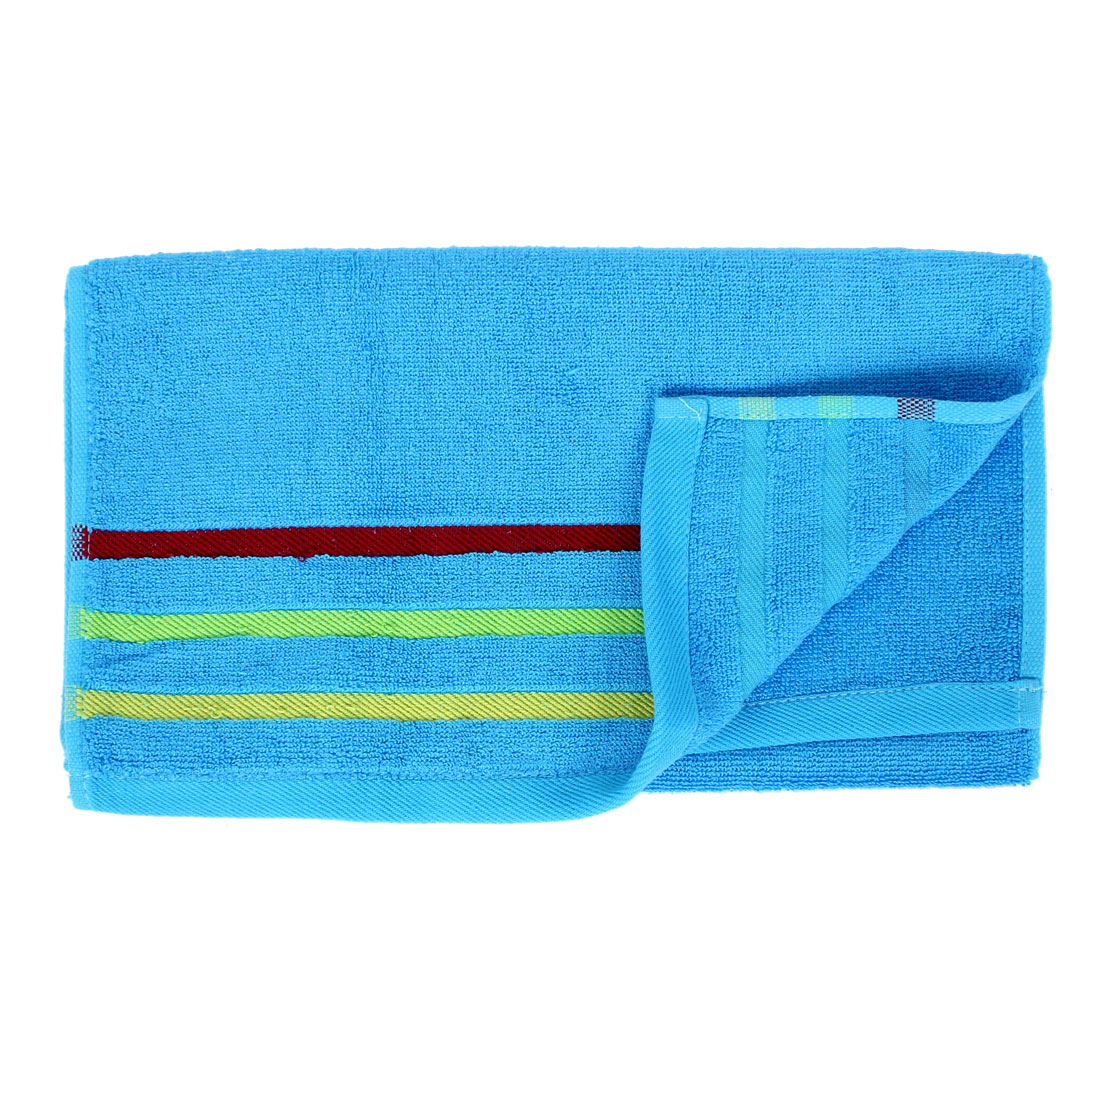 Home Cleaning Cotton Blend Bath Hand Face Terry Towels Washcloths Blue